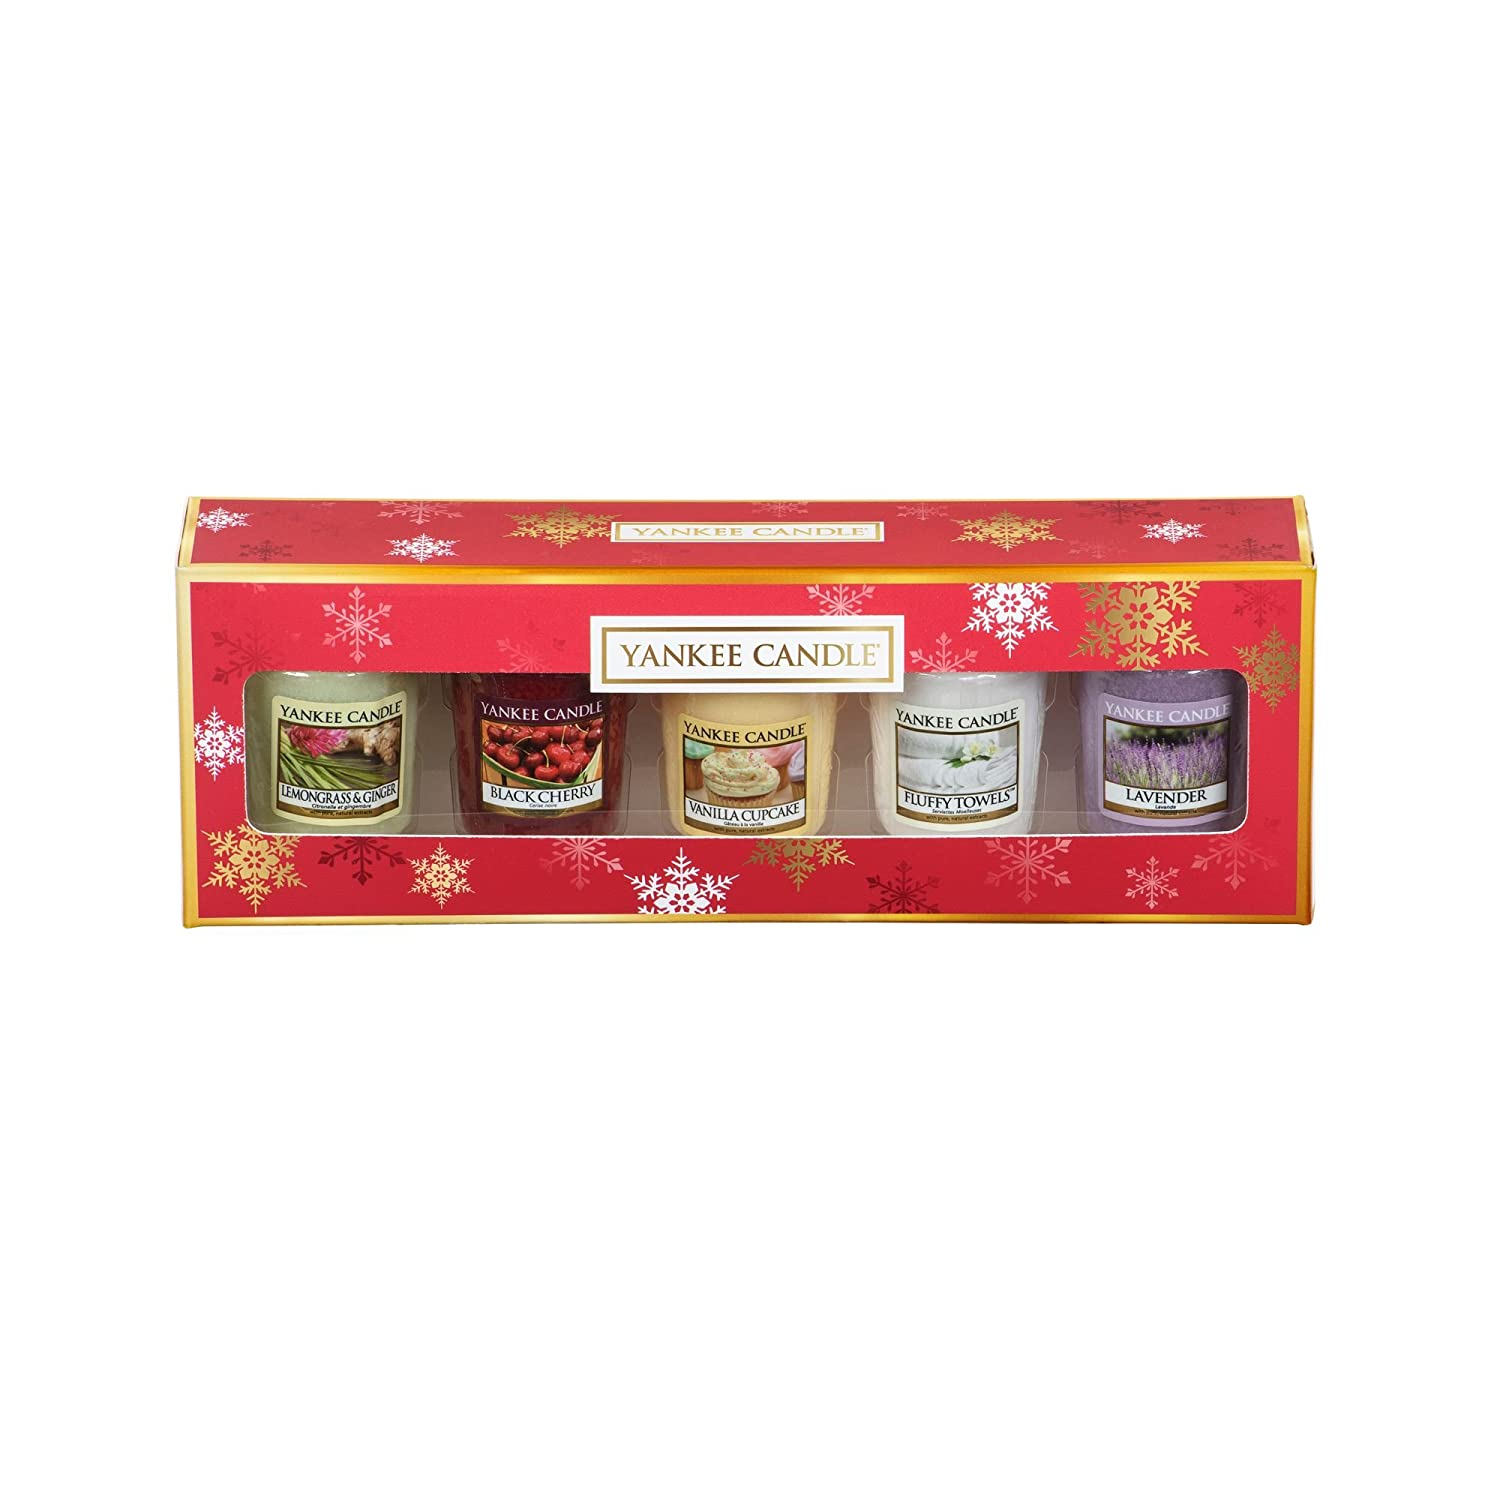 Yankee Candle Pack Of 5 Votive Candle Gift Set